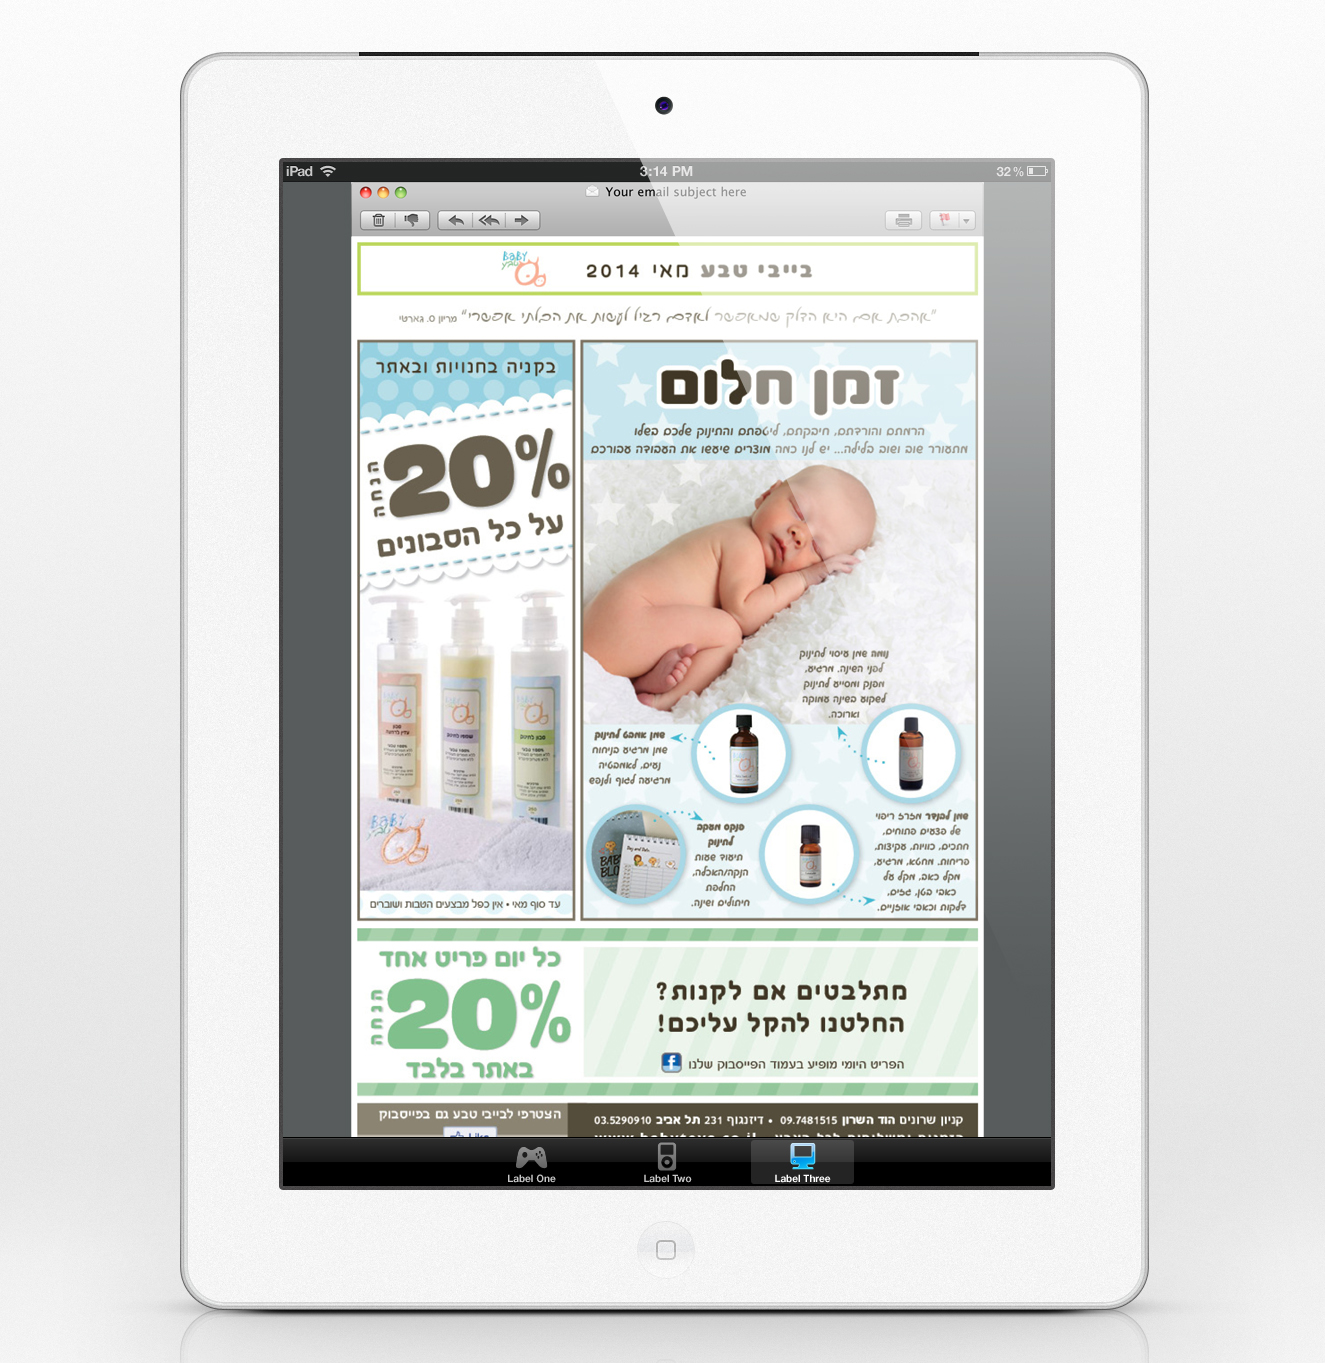 BabyTeva Newsletter